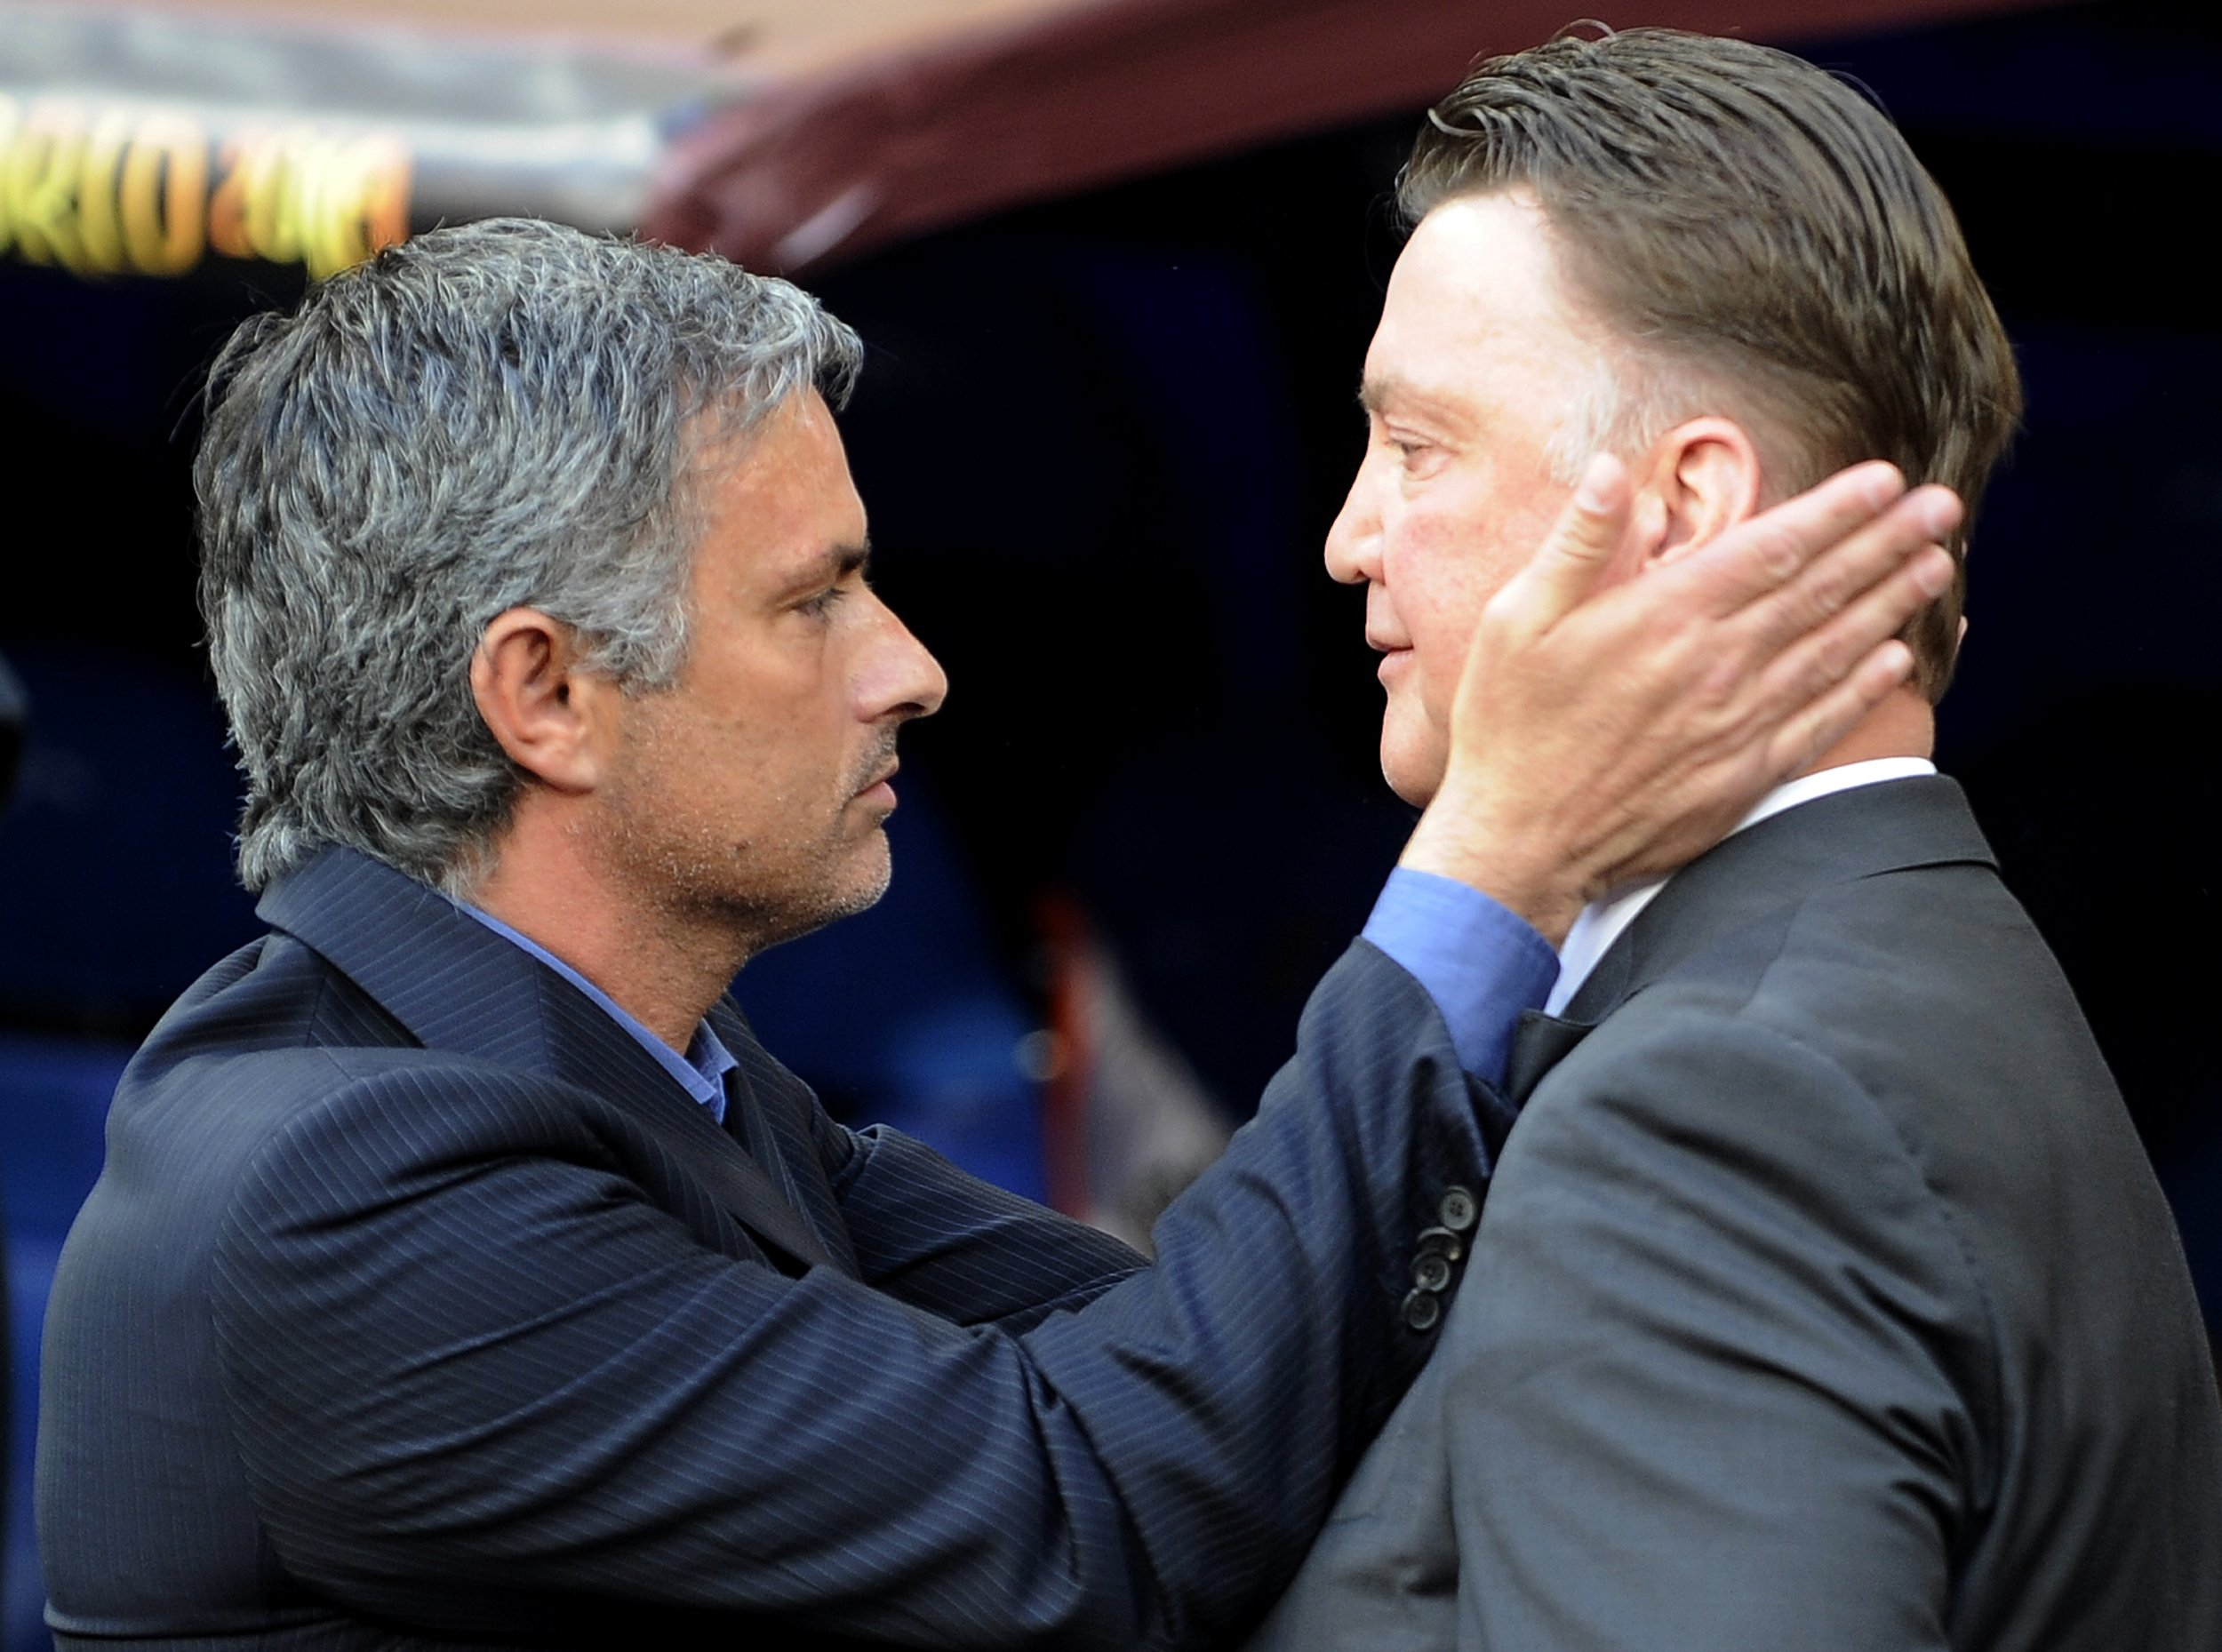 Jose Mourinho, left, with Manchester United manager Louis Van Gaal.